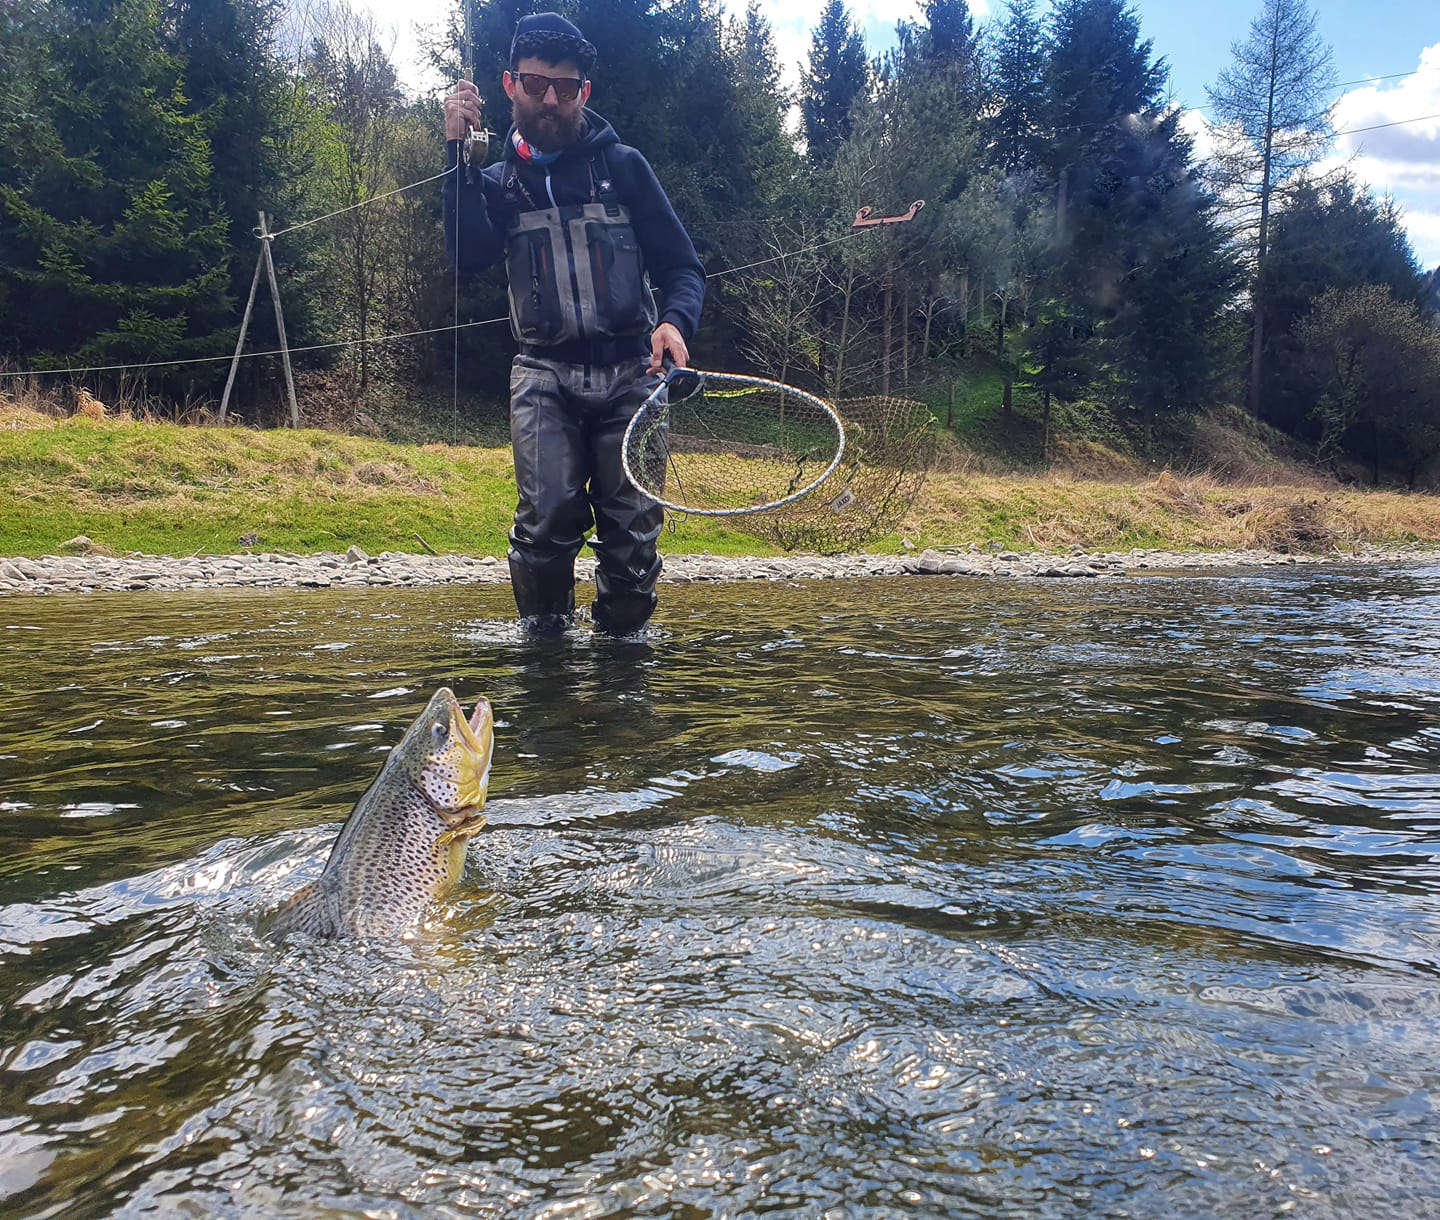 NO KILL fishing zone – Dunajec River